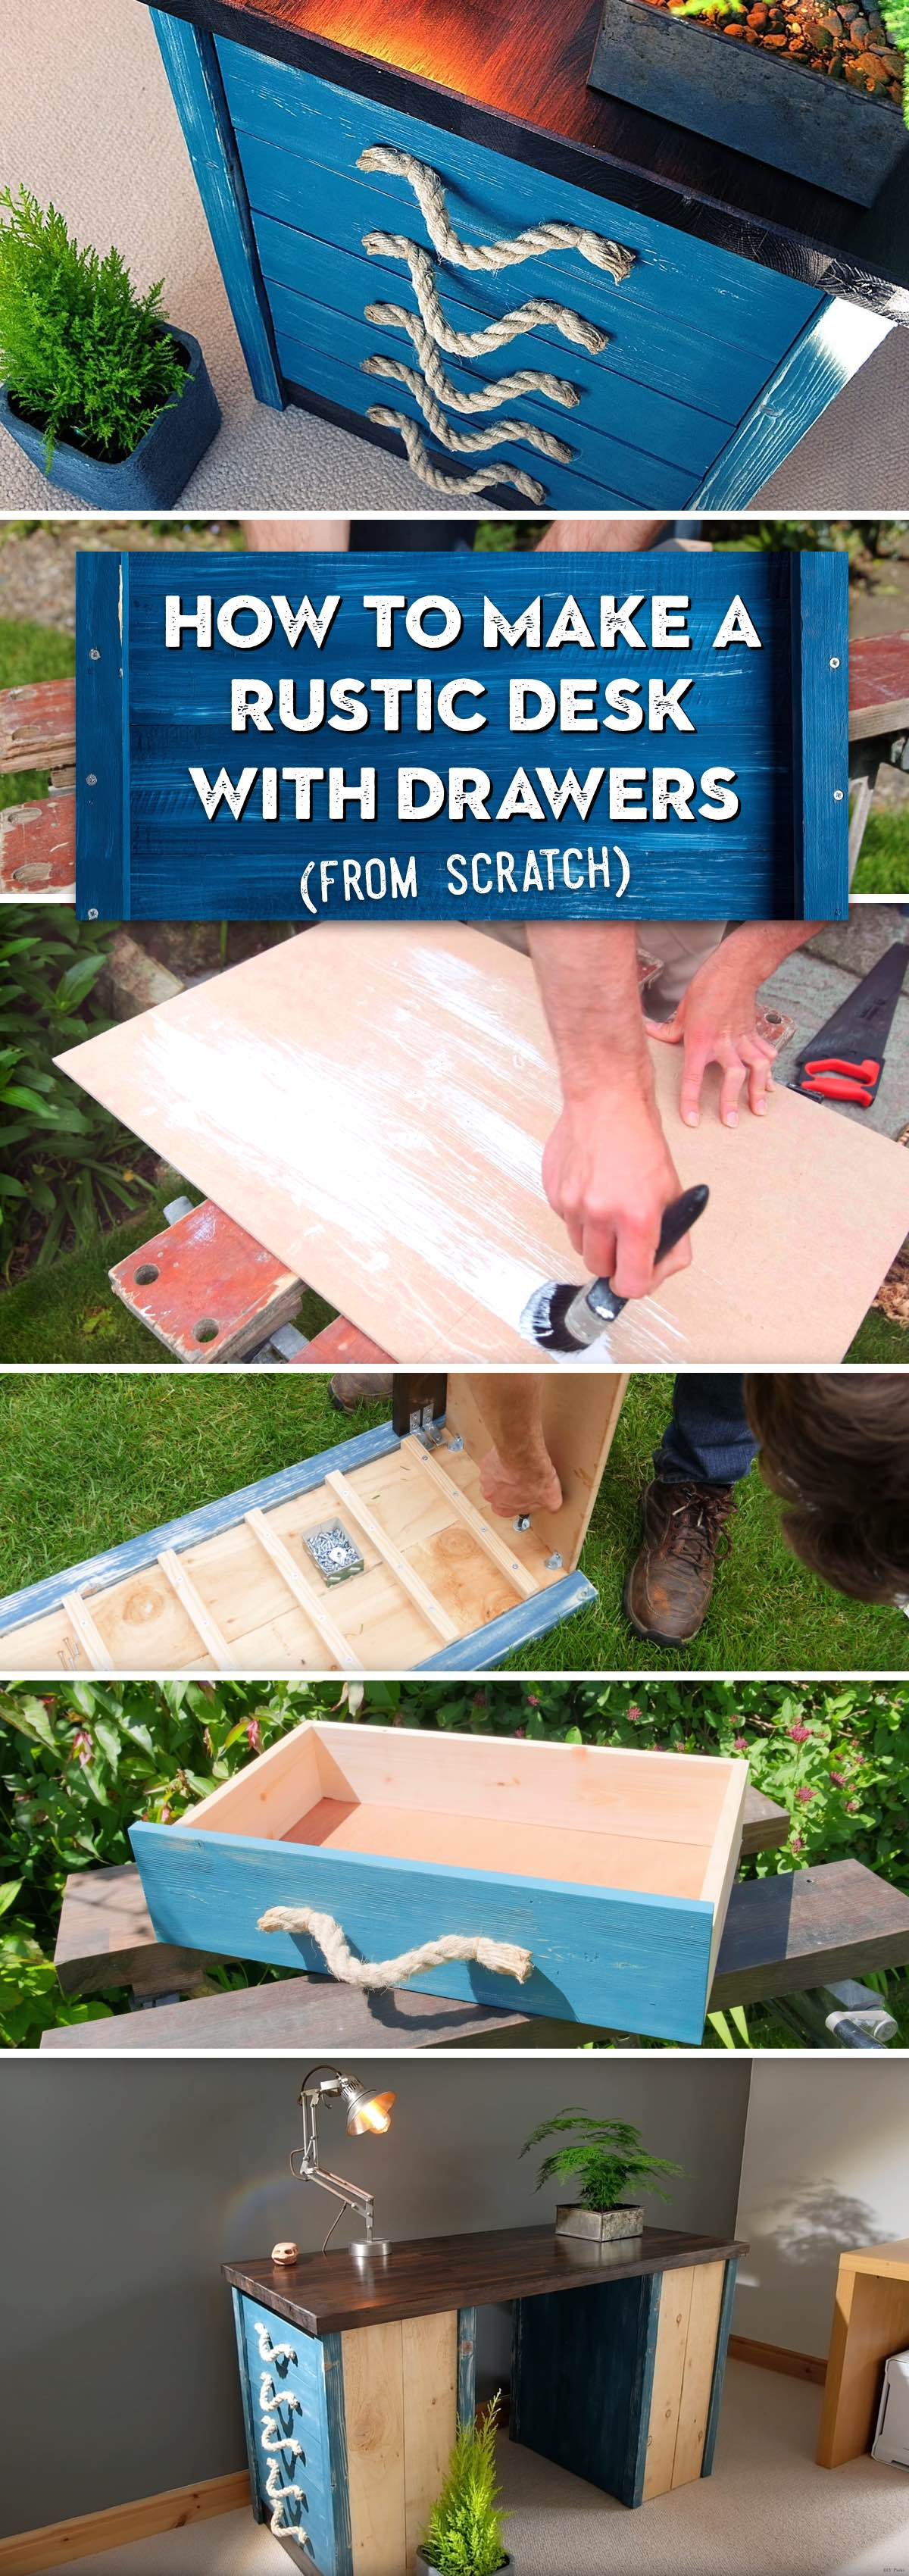 How To Make a Rustic Desk with Drawers